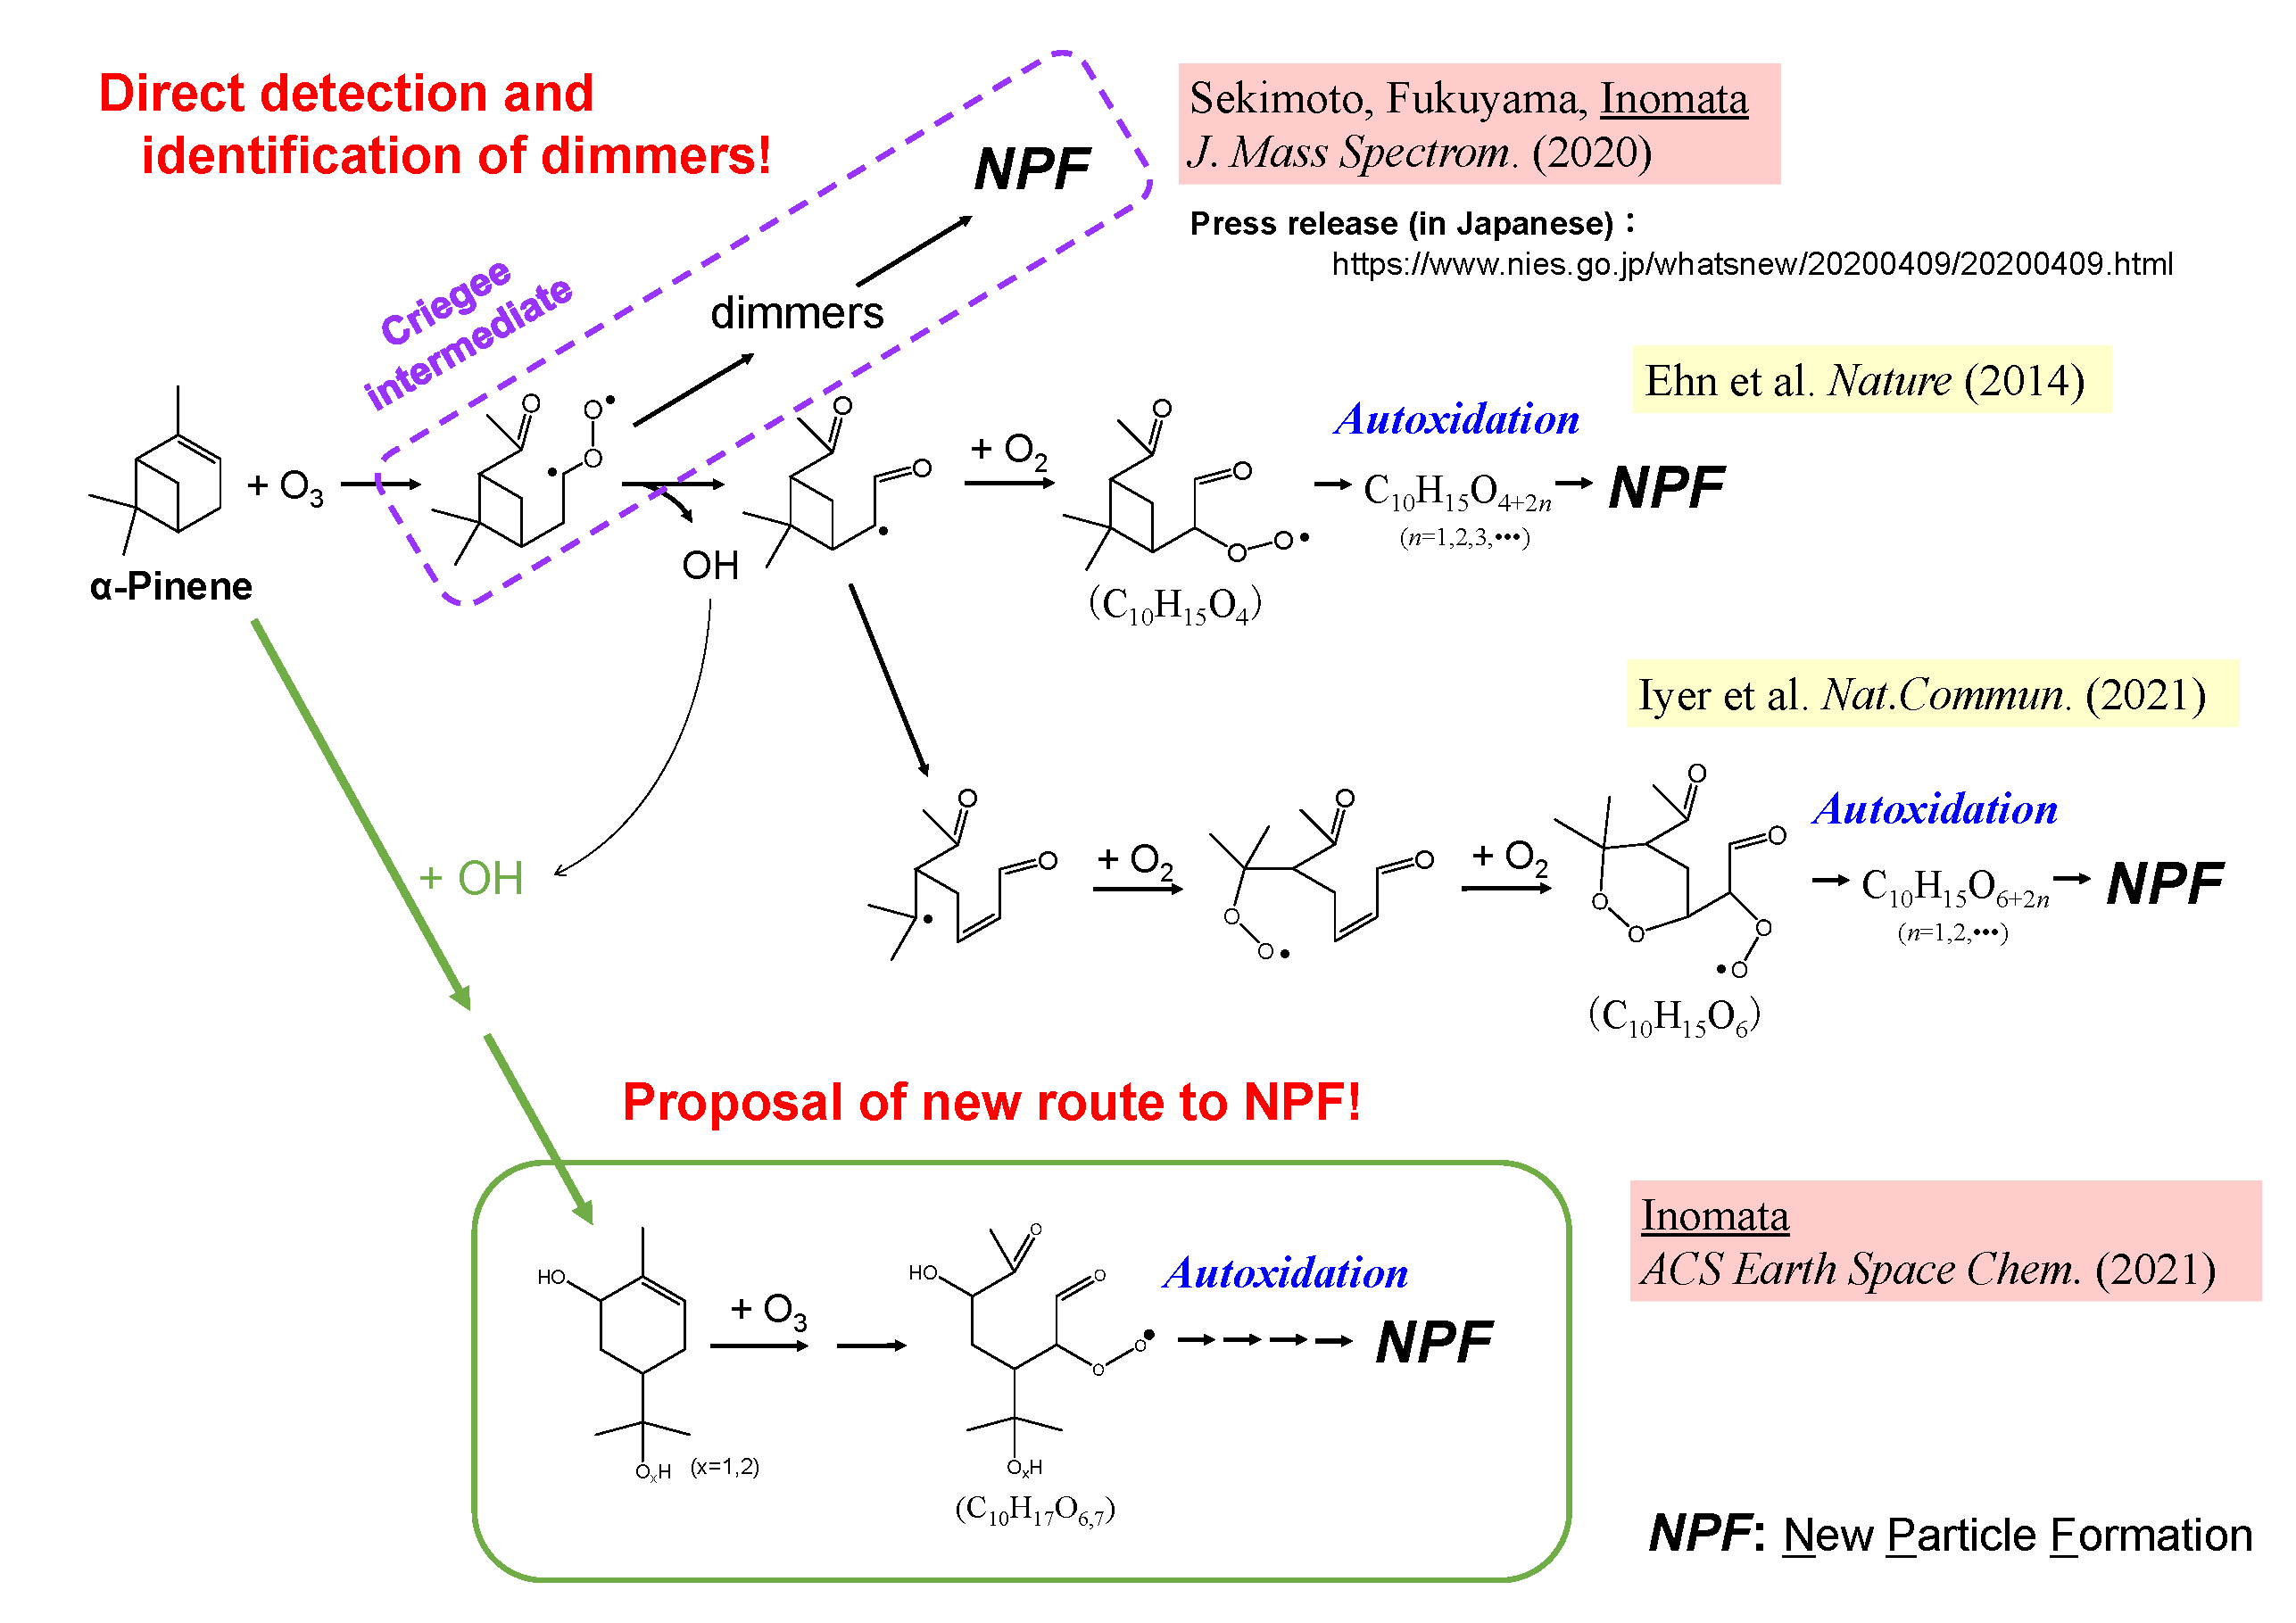 A new reaction pathway for new particle formation during α-pinene ozonolysis